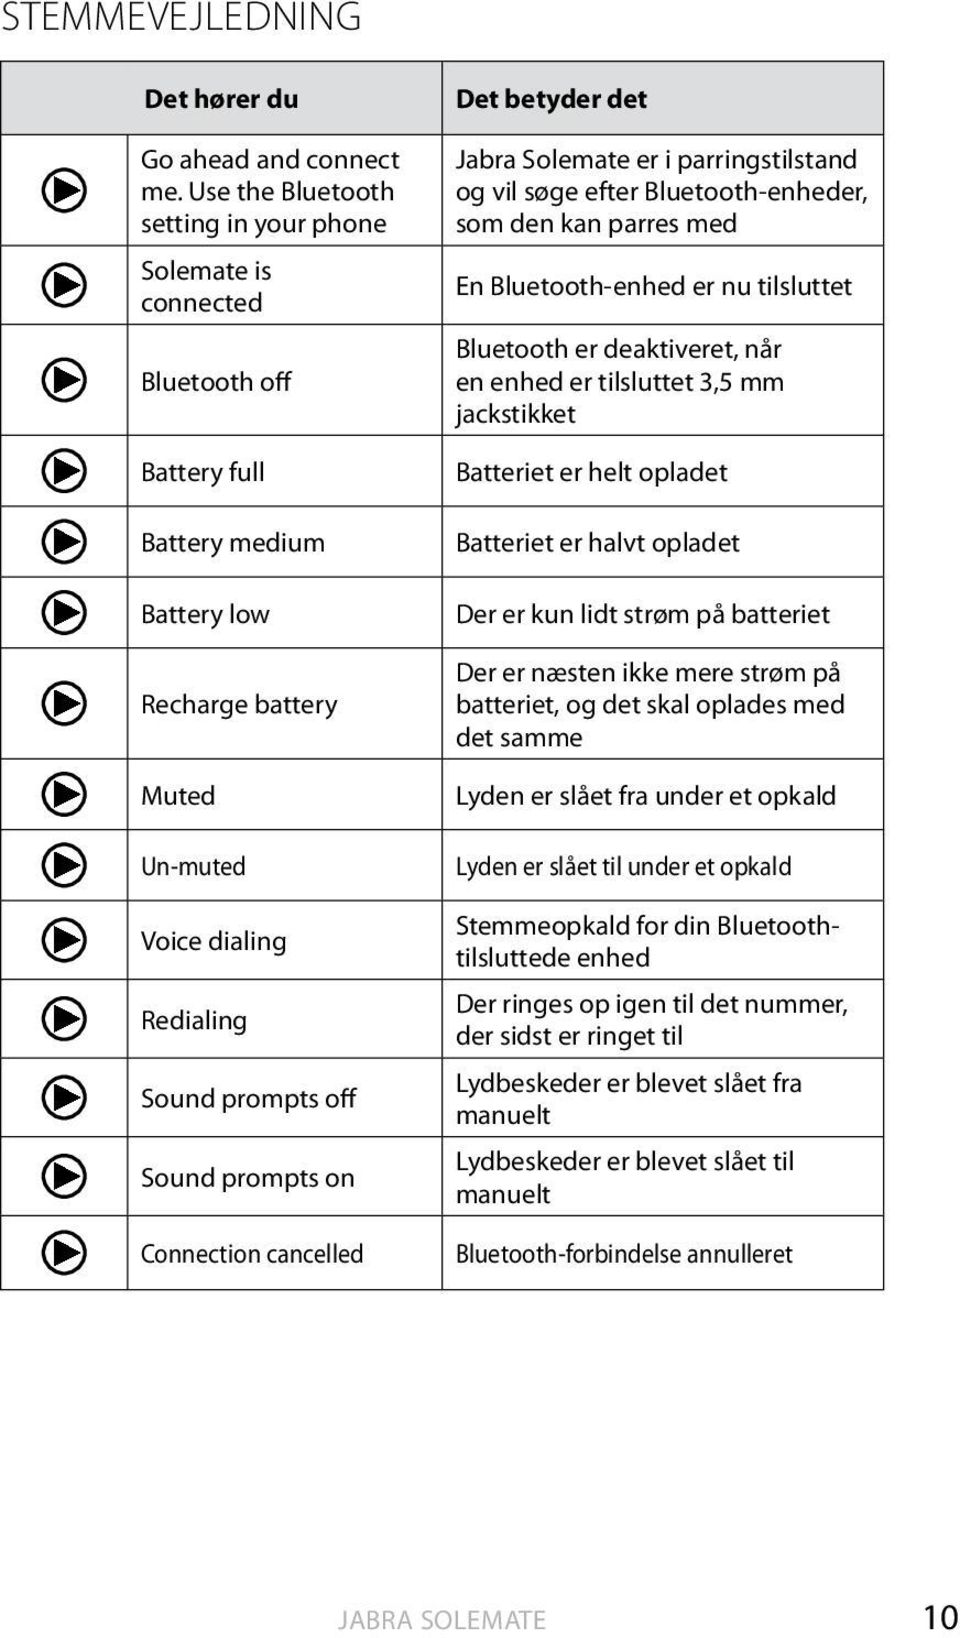 Bluetooth-enhed er nu tilsluttet Bluetooth er deaktiveret, når en enhed er tilsluttet 3,5 mm jackstikket Battery full Battery medium Battery low Recharge battery Muted Un-muted Voice dialing